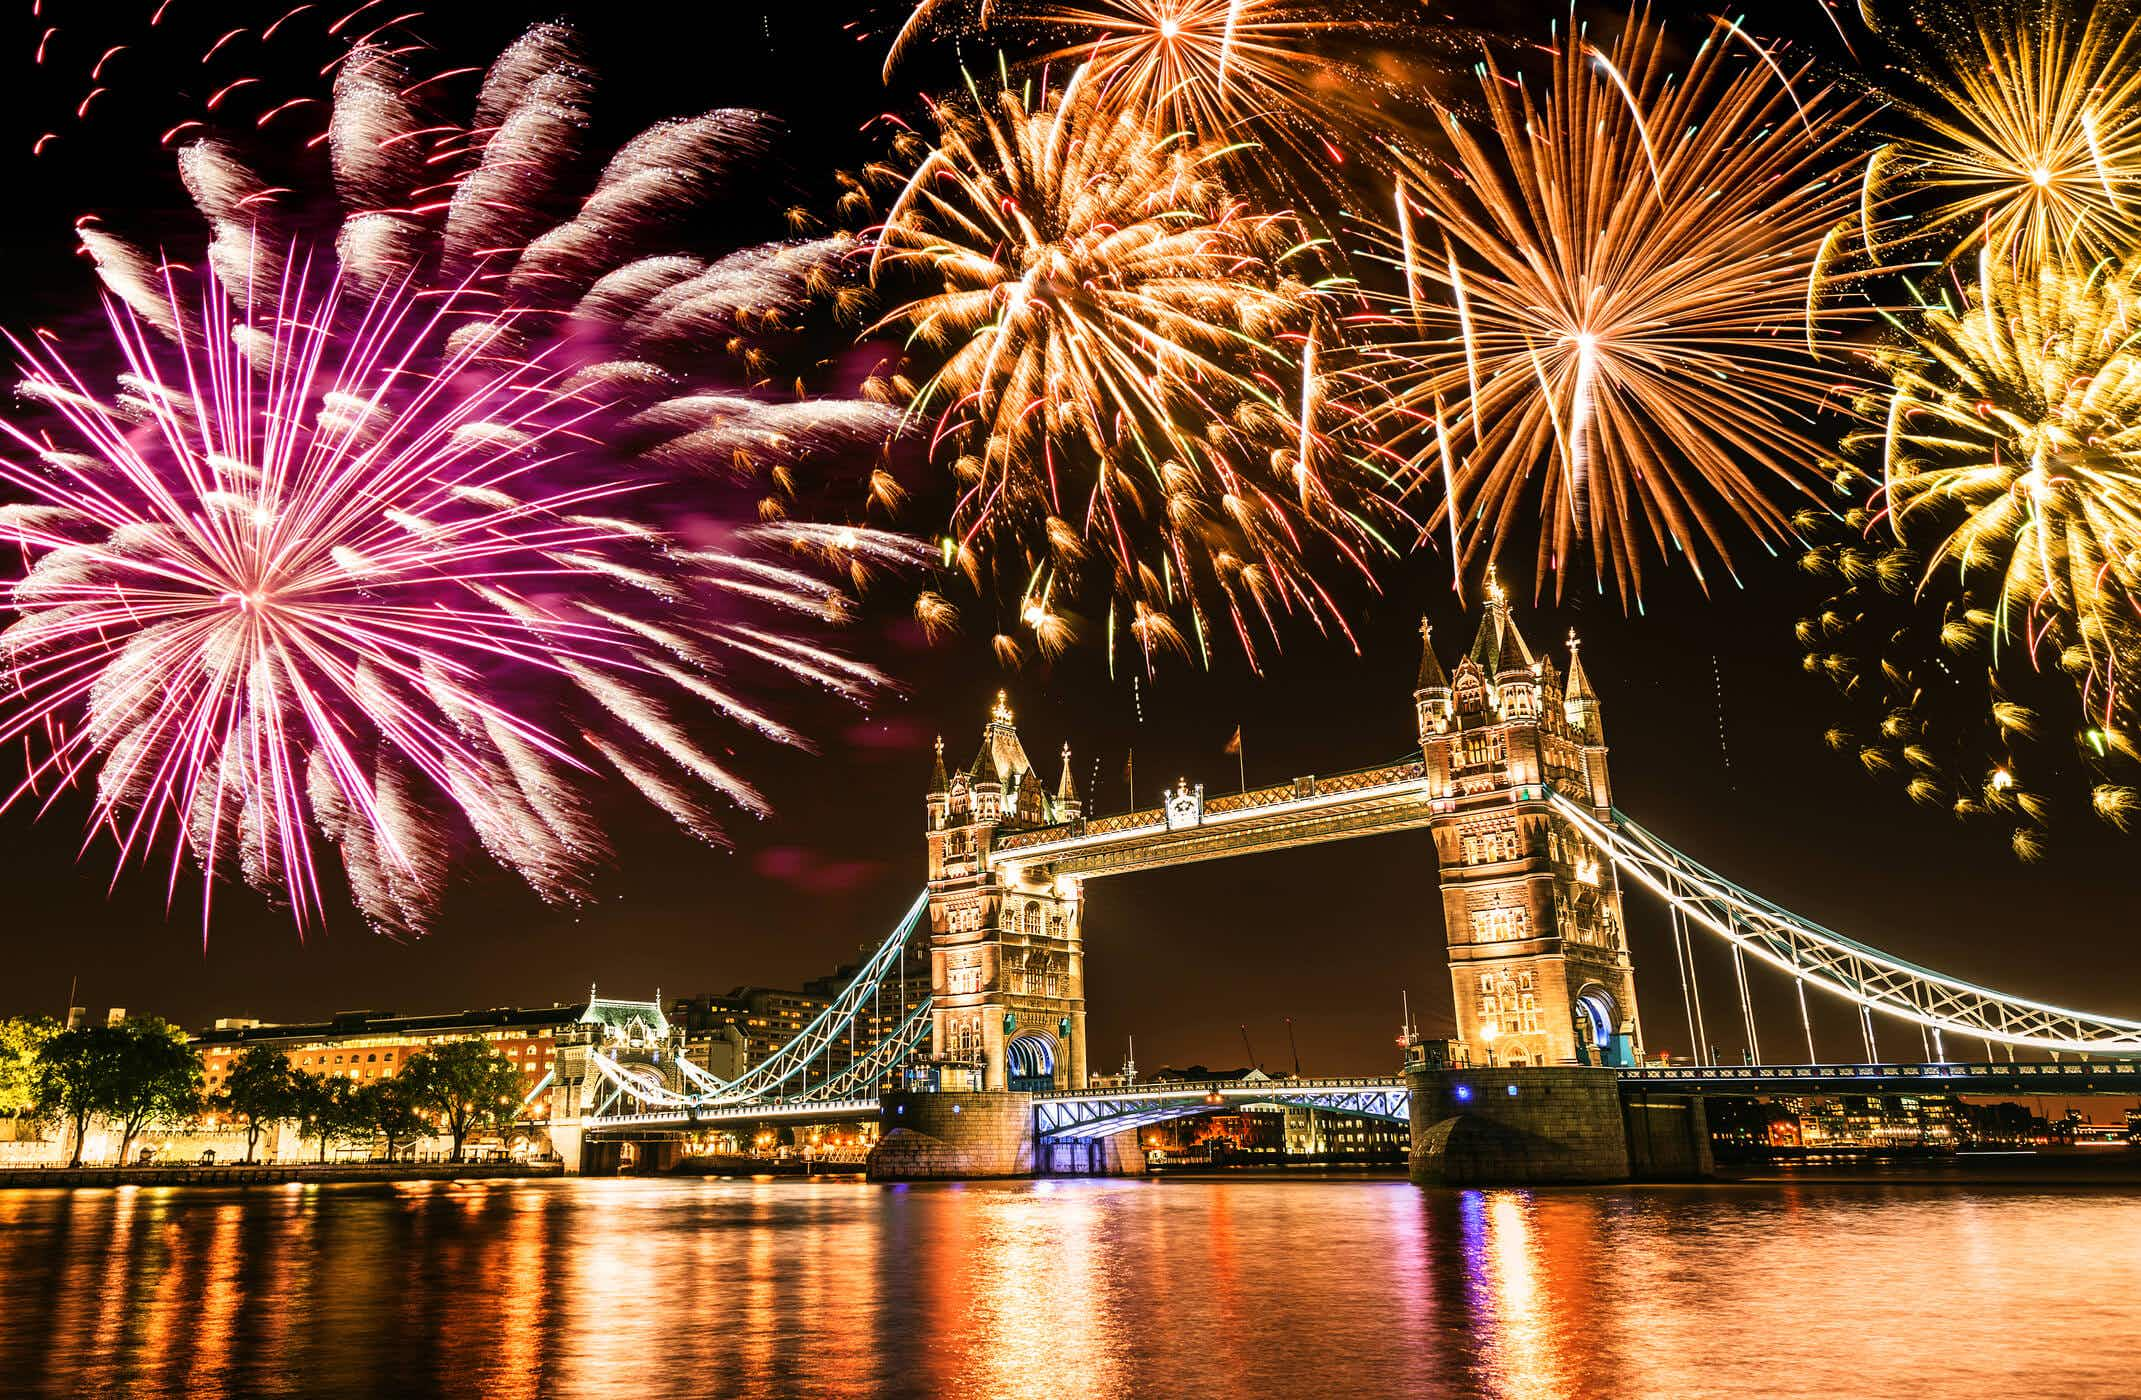 Tickets for London's New Year's Eve fireworks display are now on sale